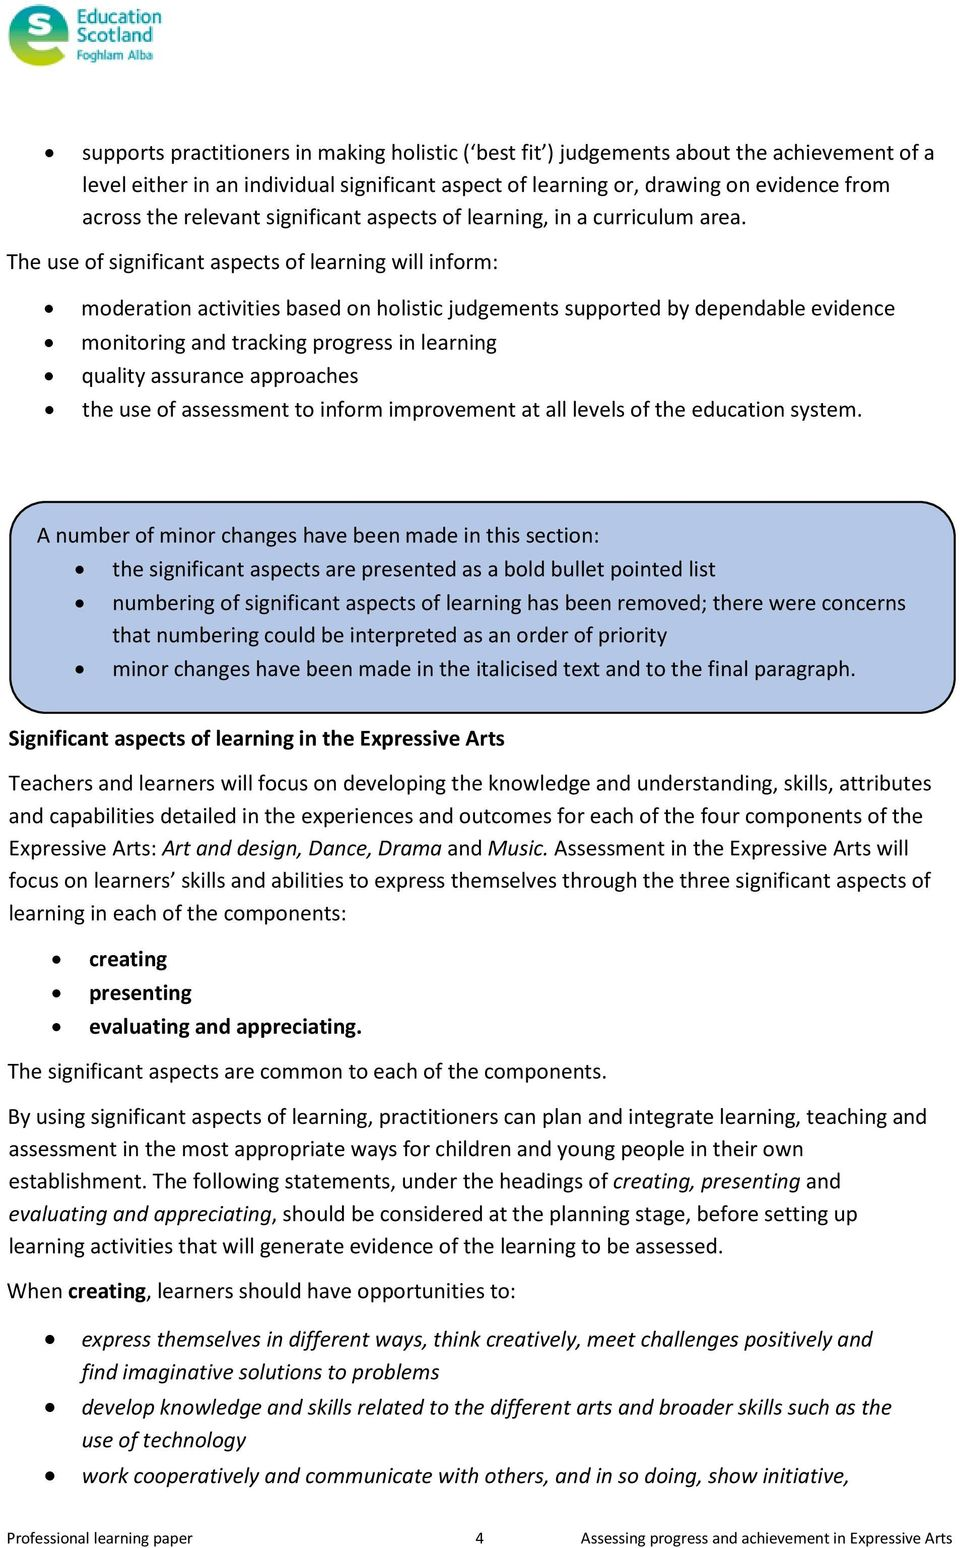 The use of significant aspects of learning will inform: moderation activities based on holistic judgements supported by dependable evidence monitoring and tracking progress in learning quality